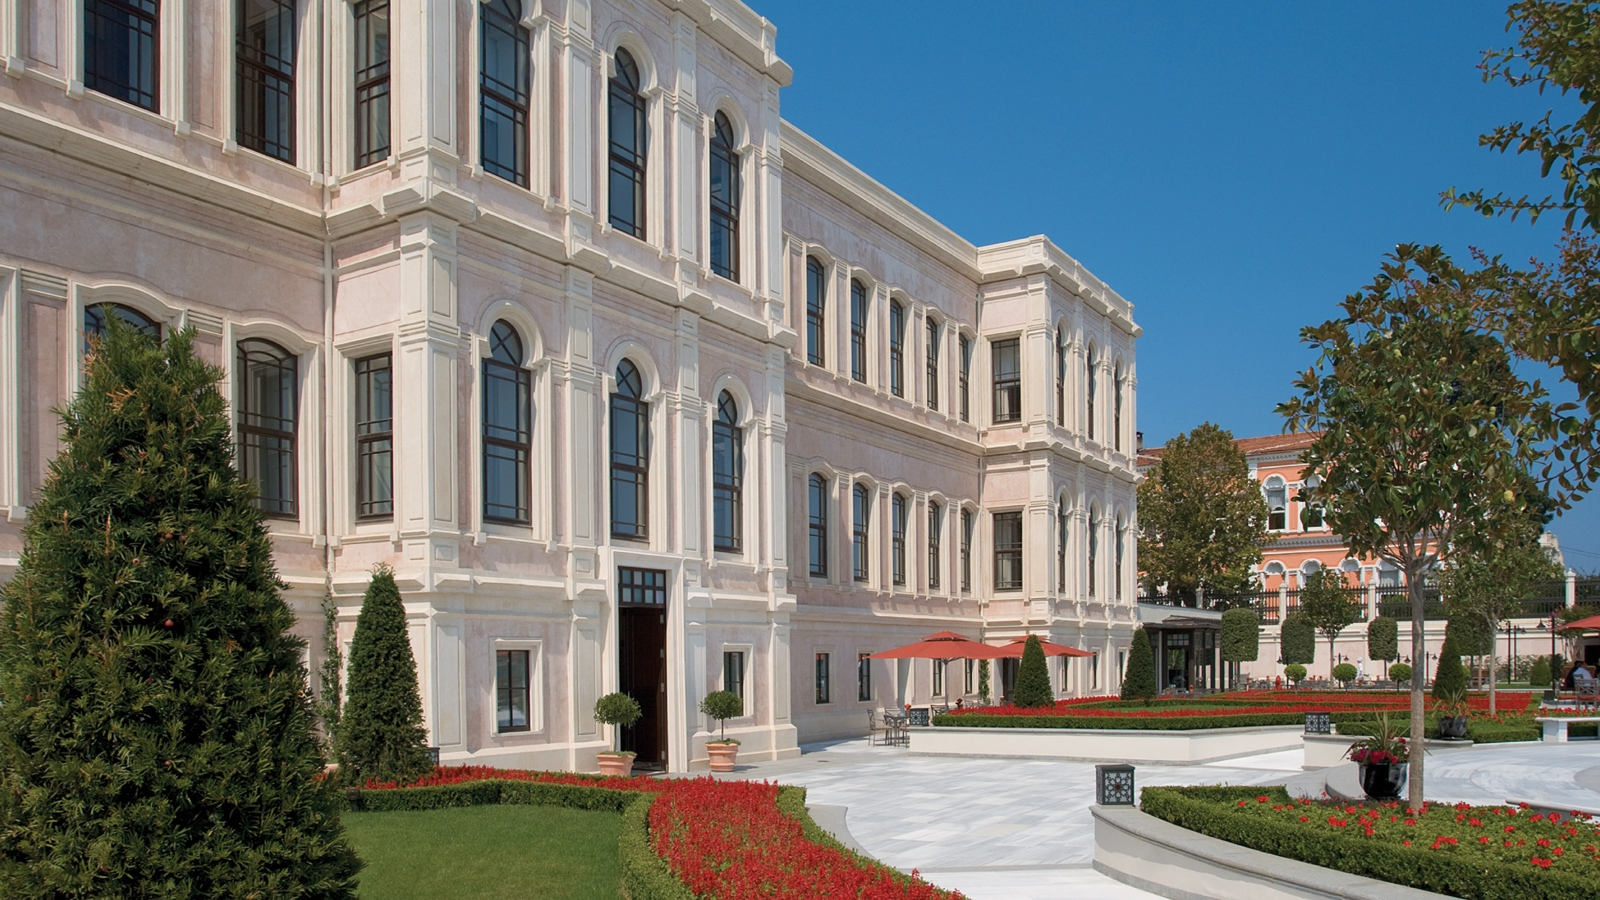 Istanbul luxury hotels 5 star images for 5 star luxury hotels